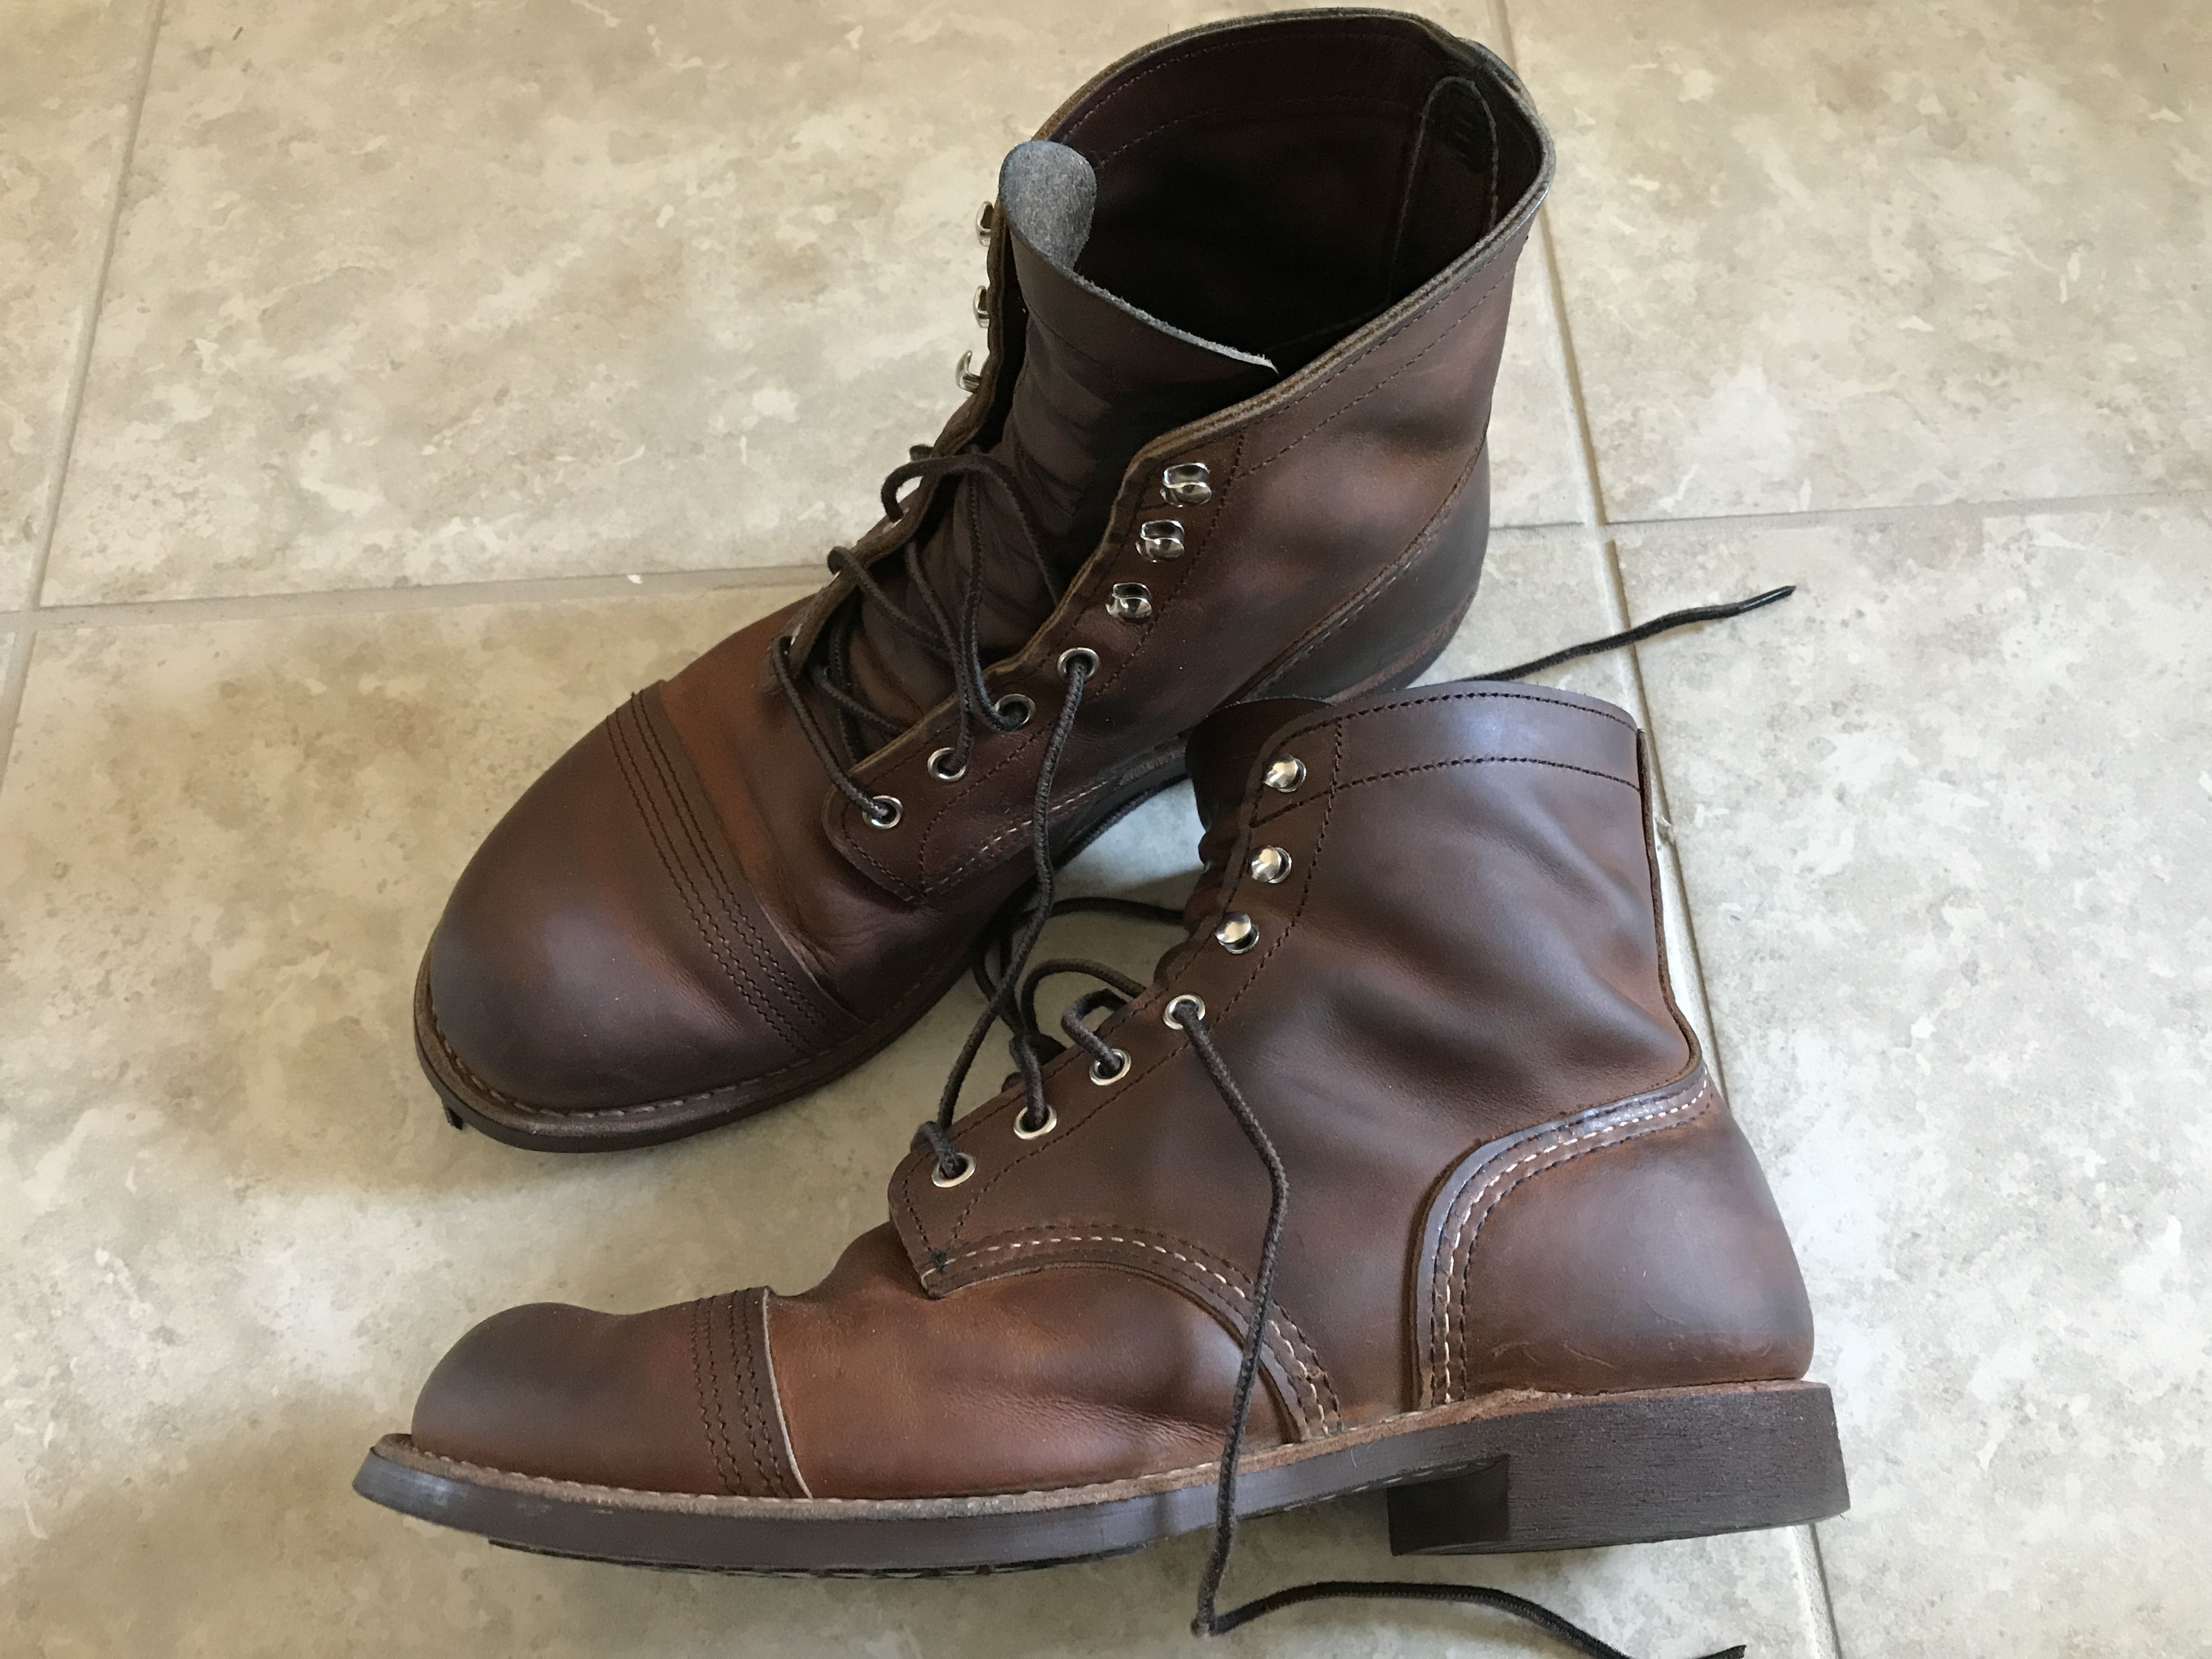 How to waterproof leather boots with spray